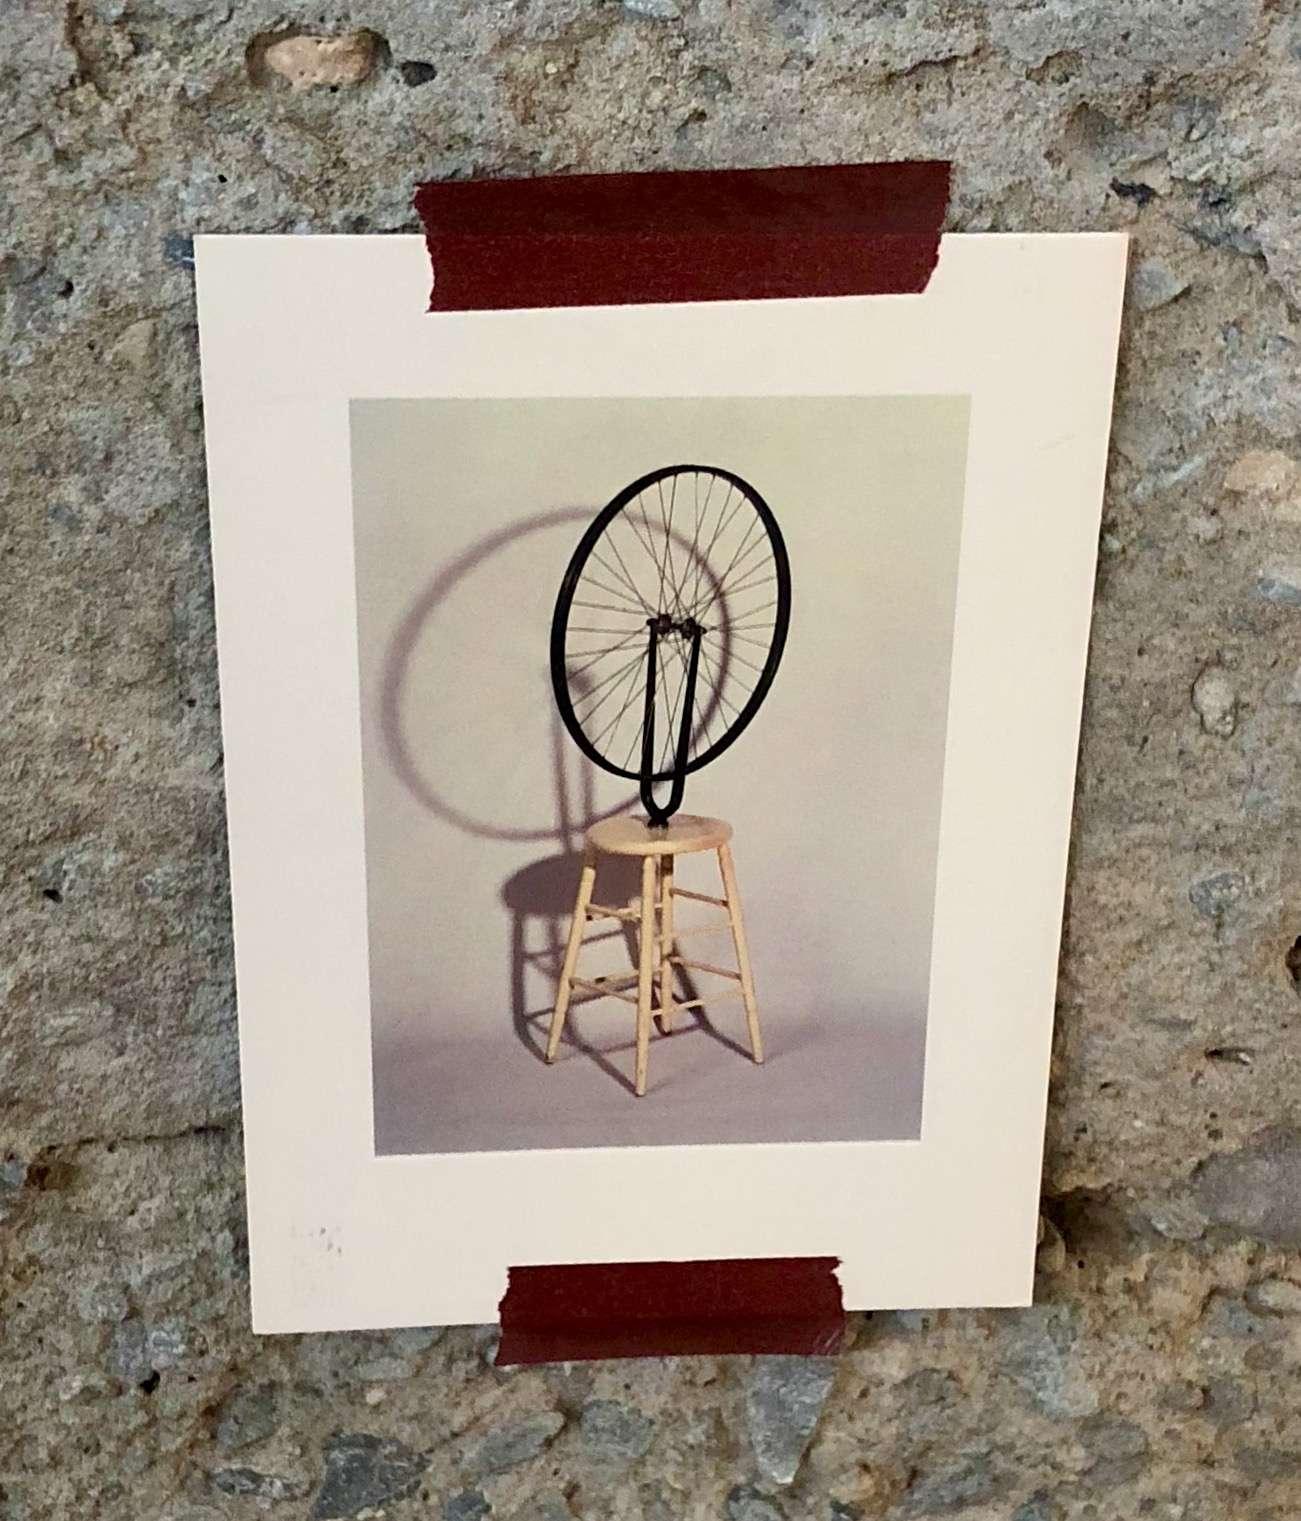 Image of postcard delivered by Sarah Cannon to Notion's office. The postcard, of Marcel Duchamp's 'Bicycle Wheel Sculpture' is reportedly hanging in their office...